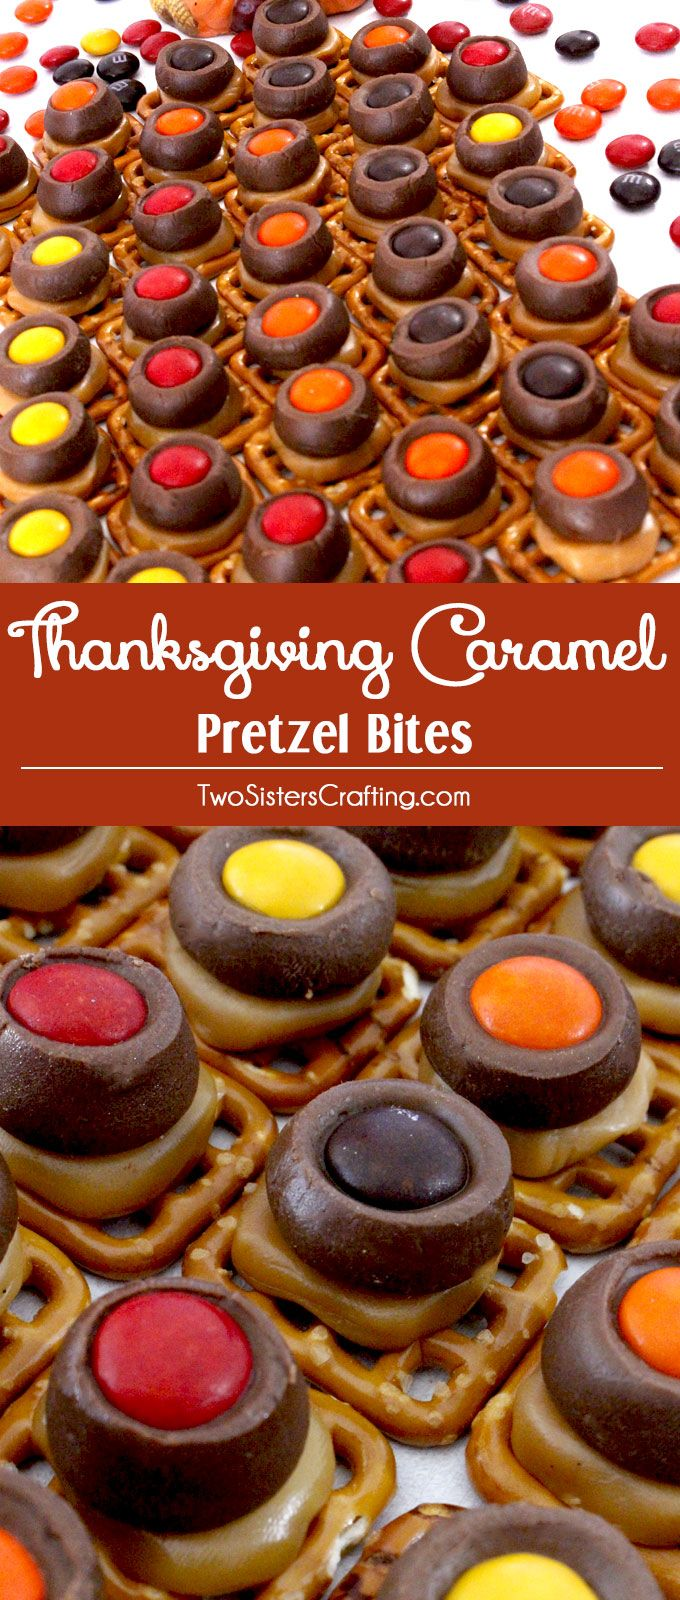 Looking for a yummy Thanksgiving snack? These easy to make Thanksgiving Caramel Pretzel Bites will be everyone's favorite treat at your Thanksgiving table! Sweet, salty and delicious - the perfect Thanksgiving Food combination. Pin this delicious Thanksgiving Treat for later and follow us for more great Thanksgiving Dessert Ideas.